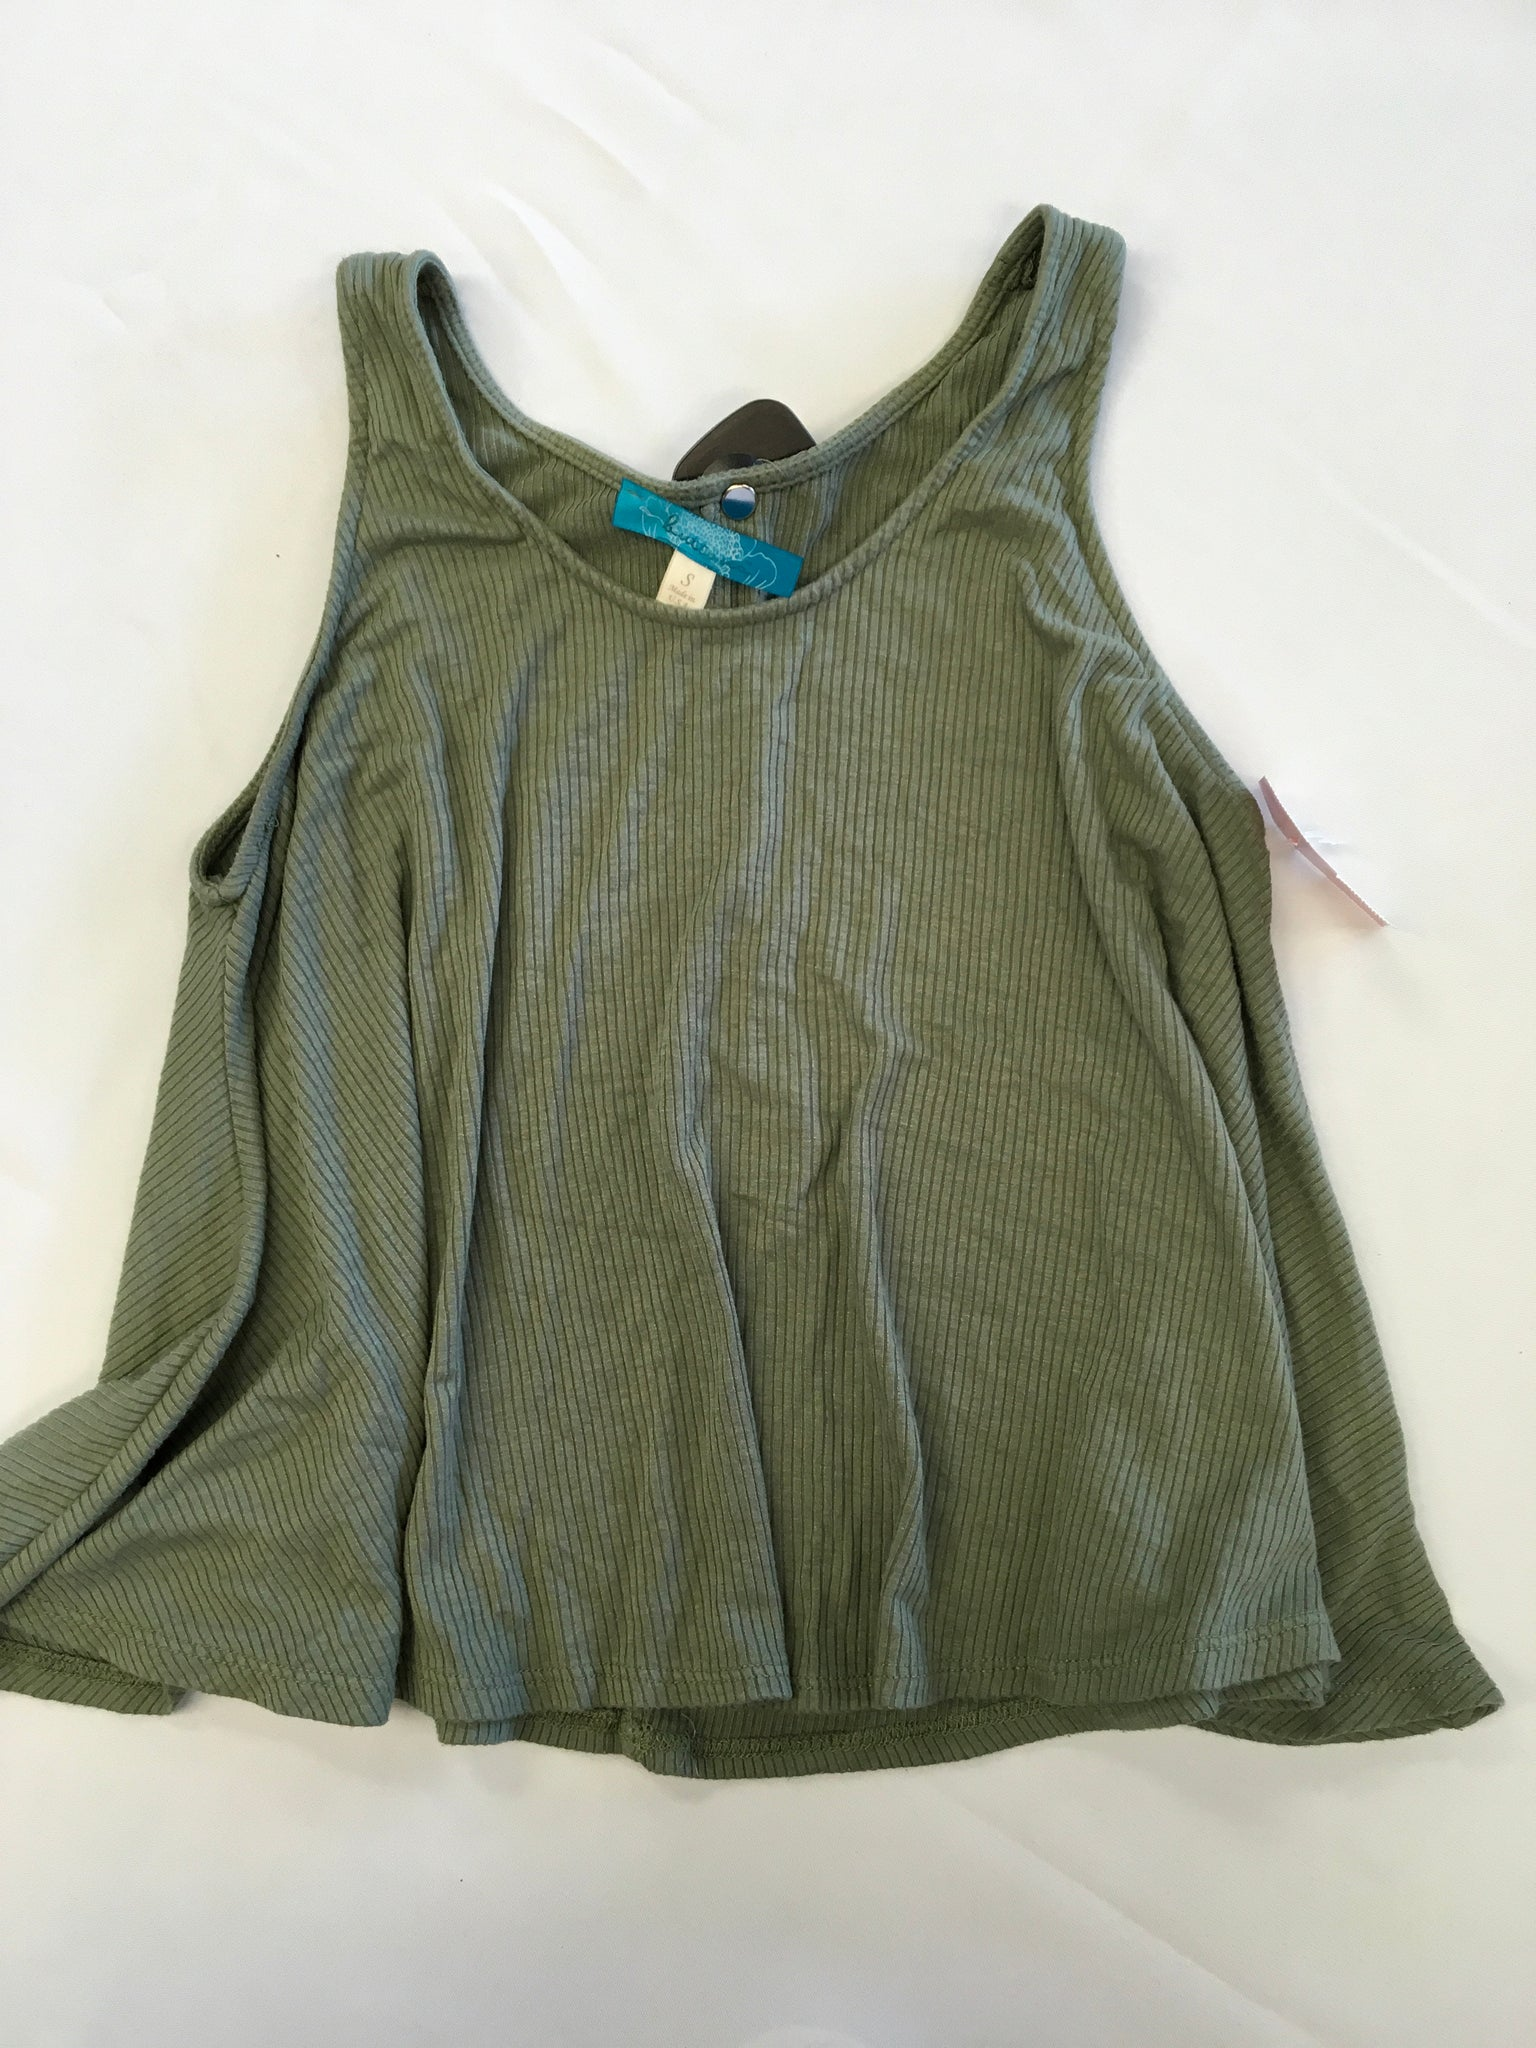 Womens Tank Top Size Small - Plato's Closet Batavia